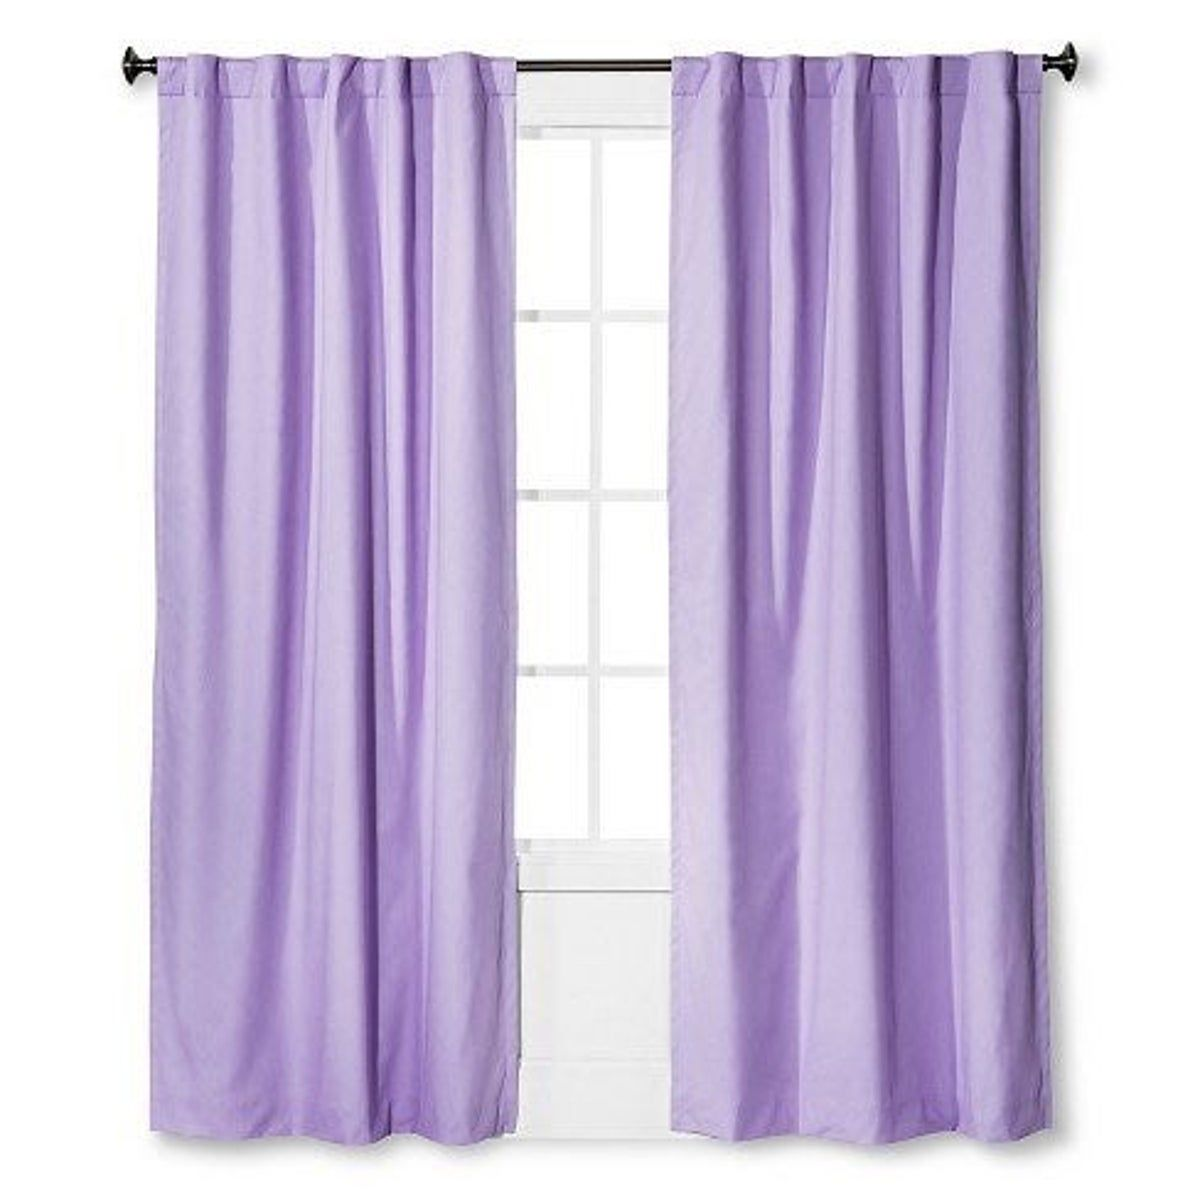 Lavender Light Blocking Curtains In 2020 Panel Curtains Light